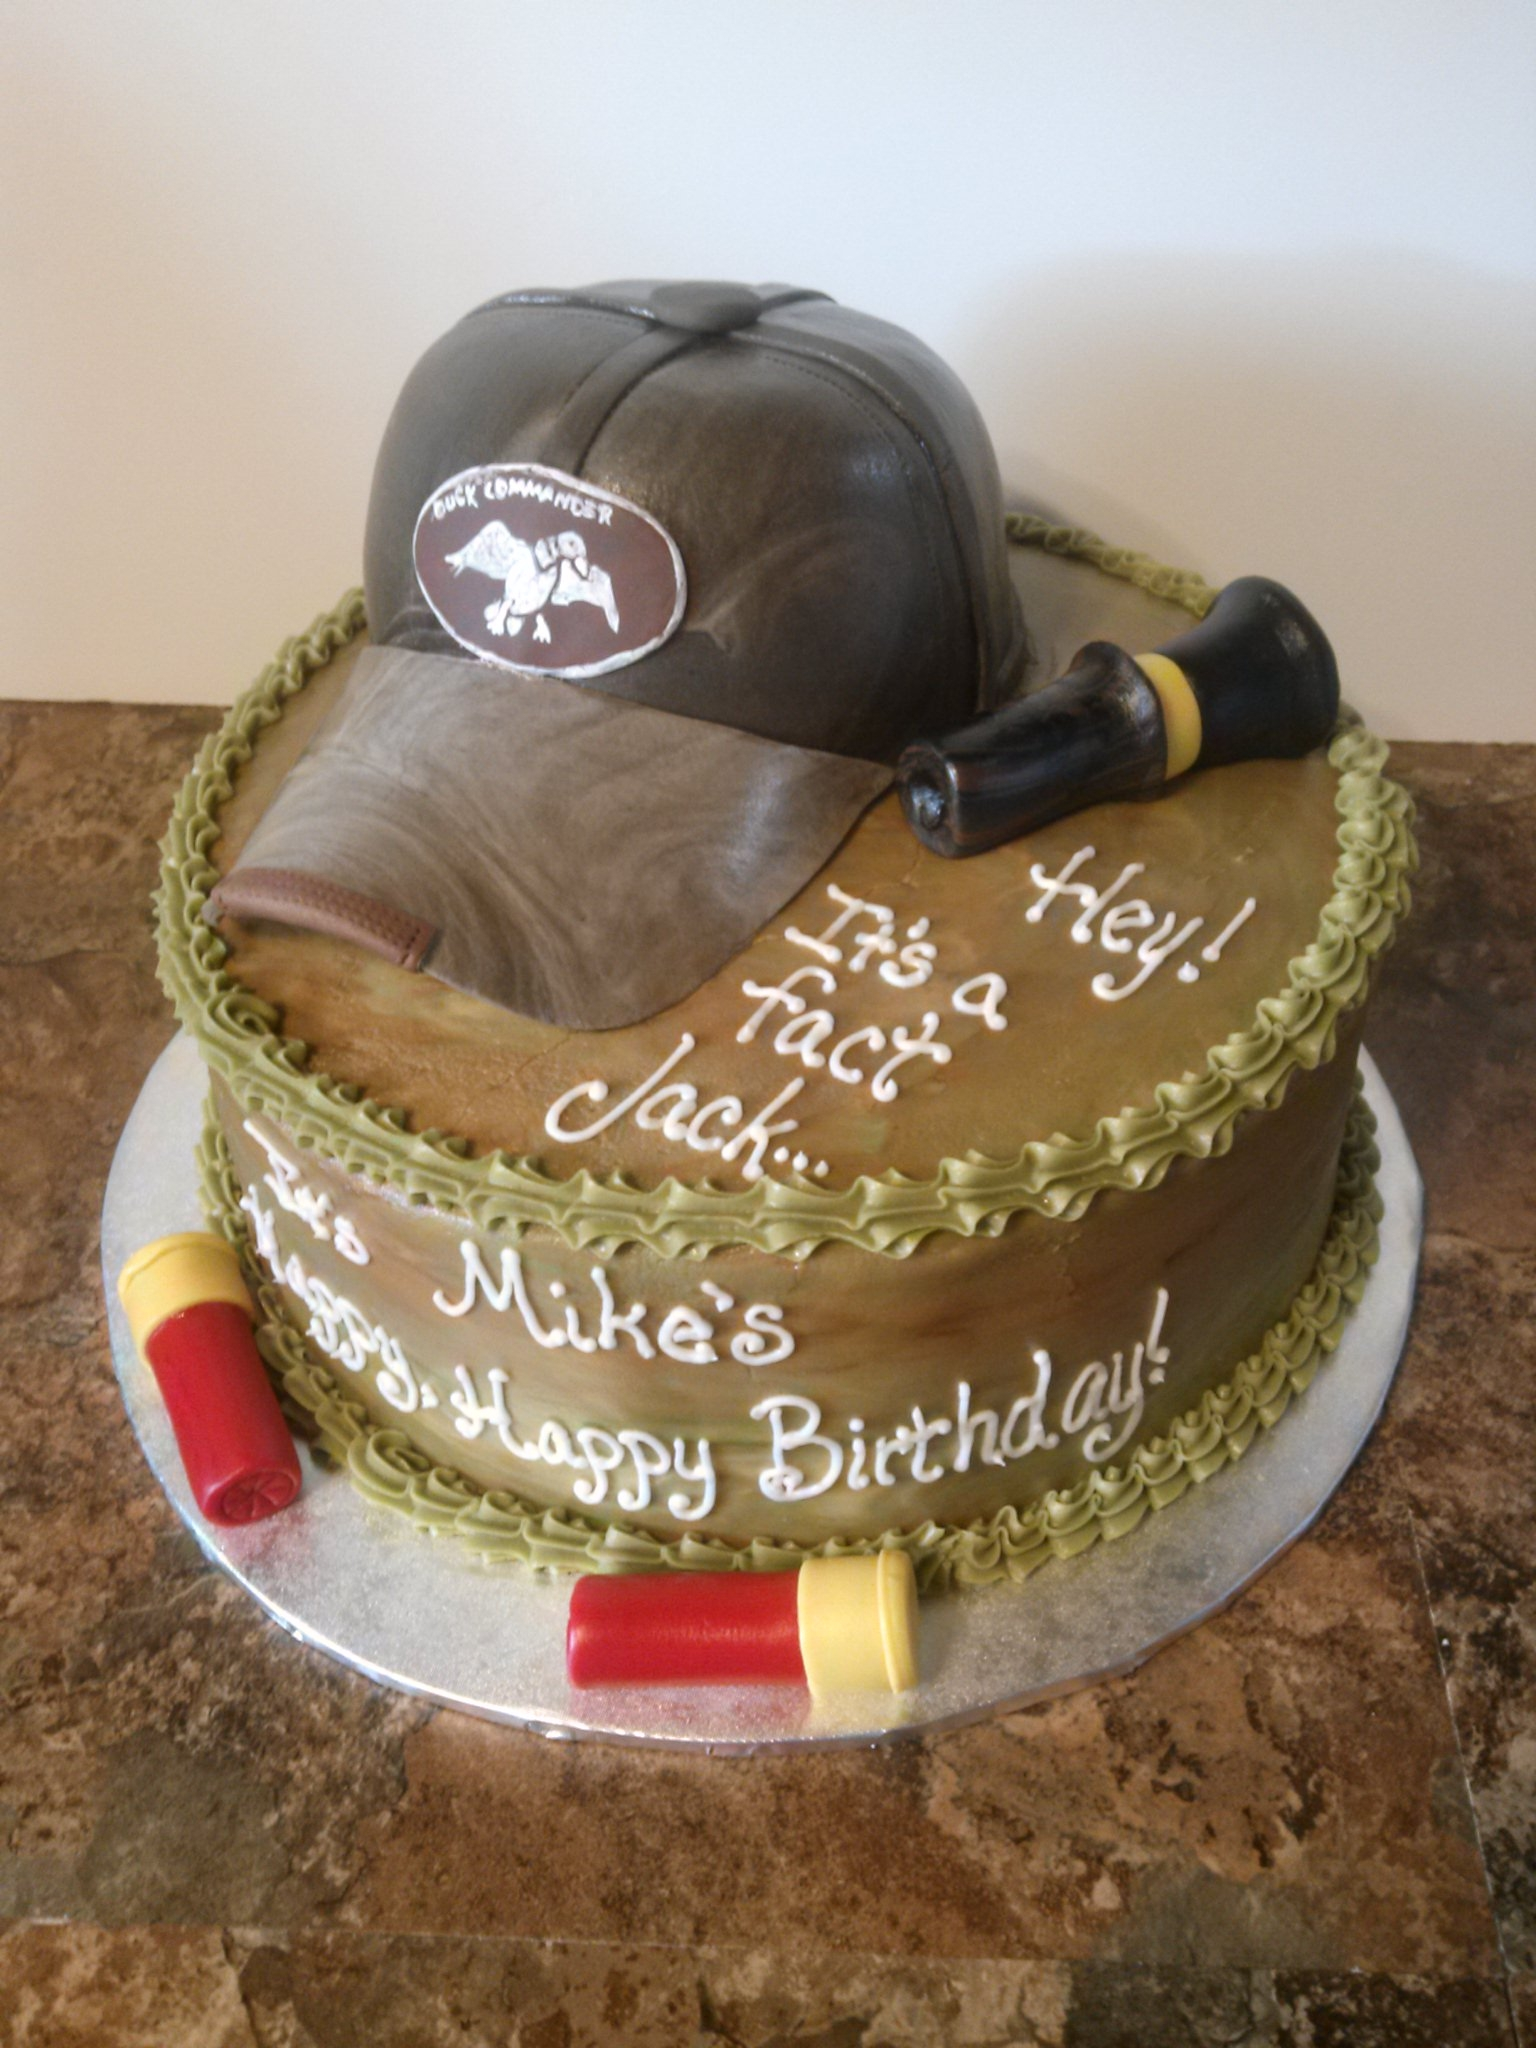 Ducky Commander first birthday cake set... All edible